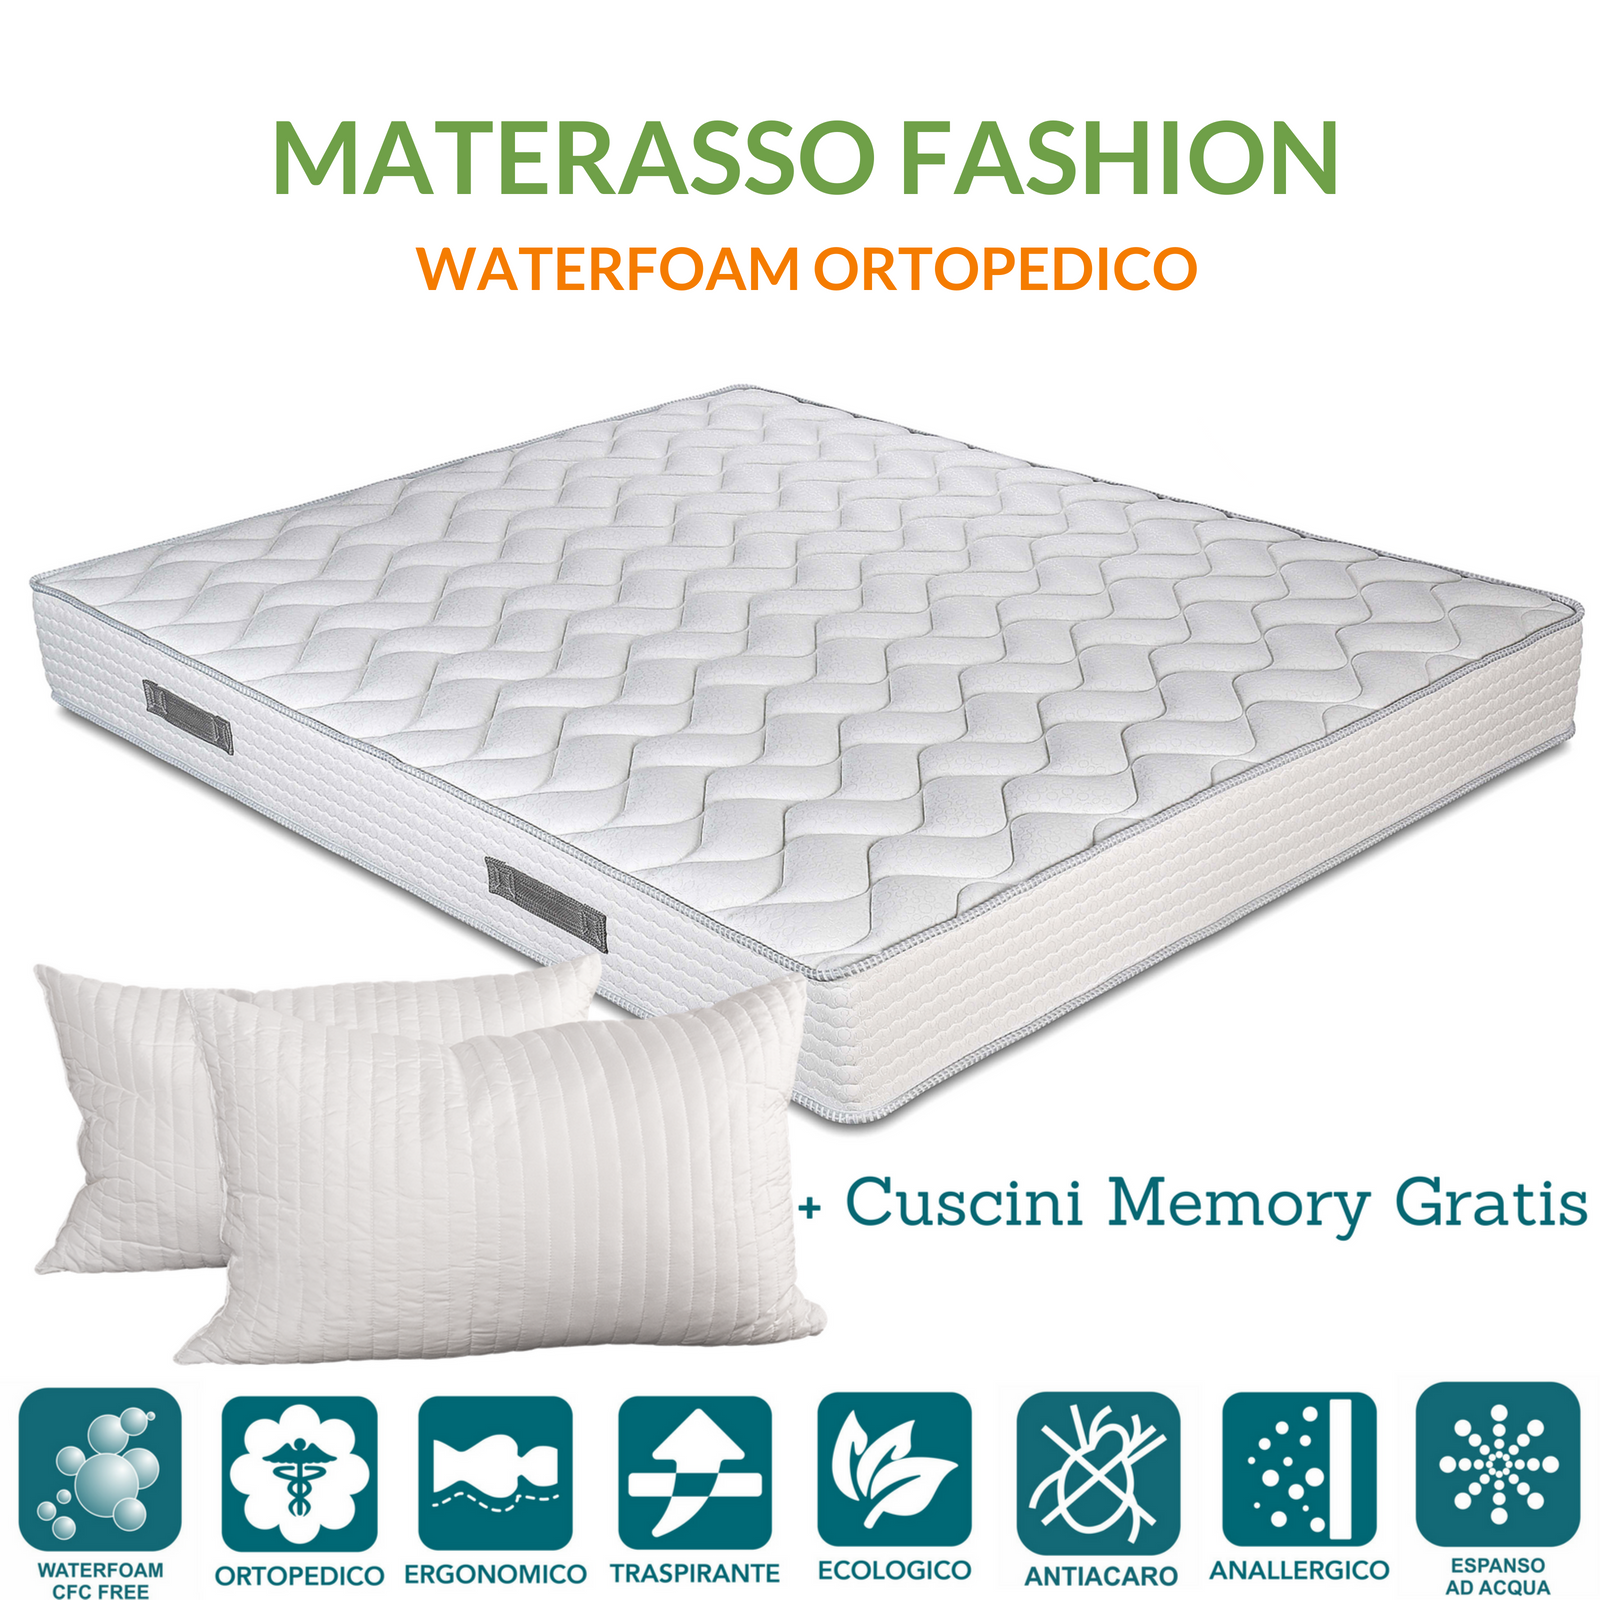 Materasso Ad Acqua Matrimoniale.Materasso Matrimoniale 160x190 Evergreenweb In Waterfoam Senza